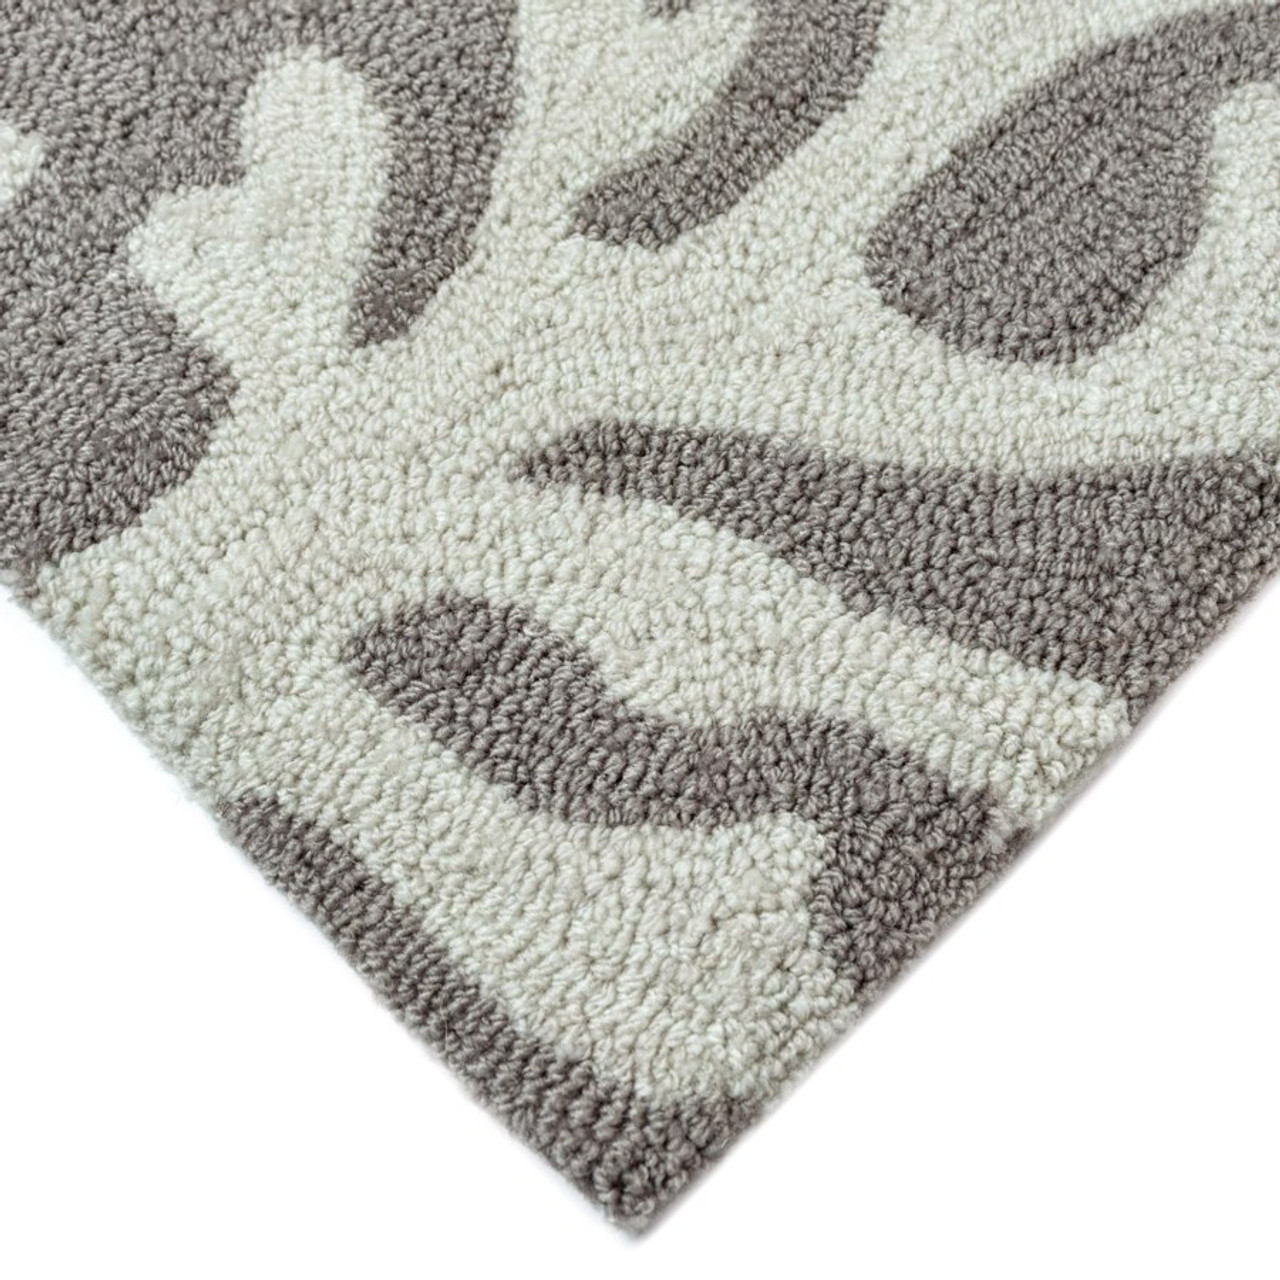 Capri Coral Border Indoor/Outdoor Rug -  Silver - Pile